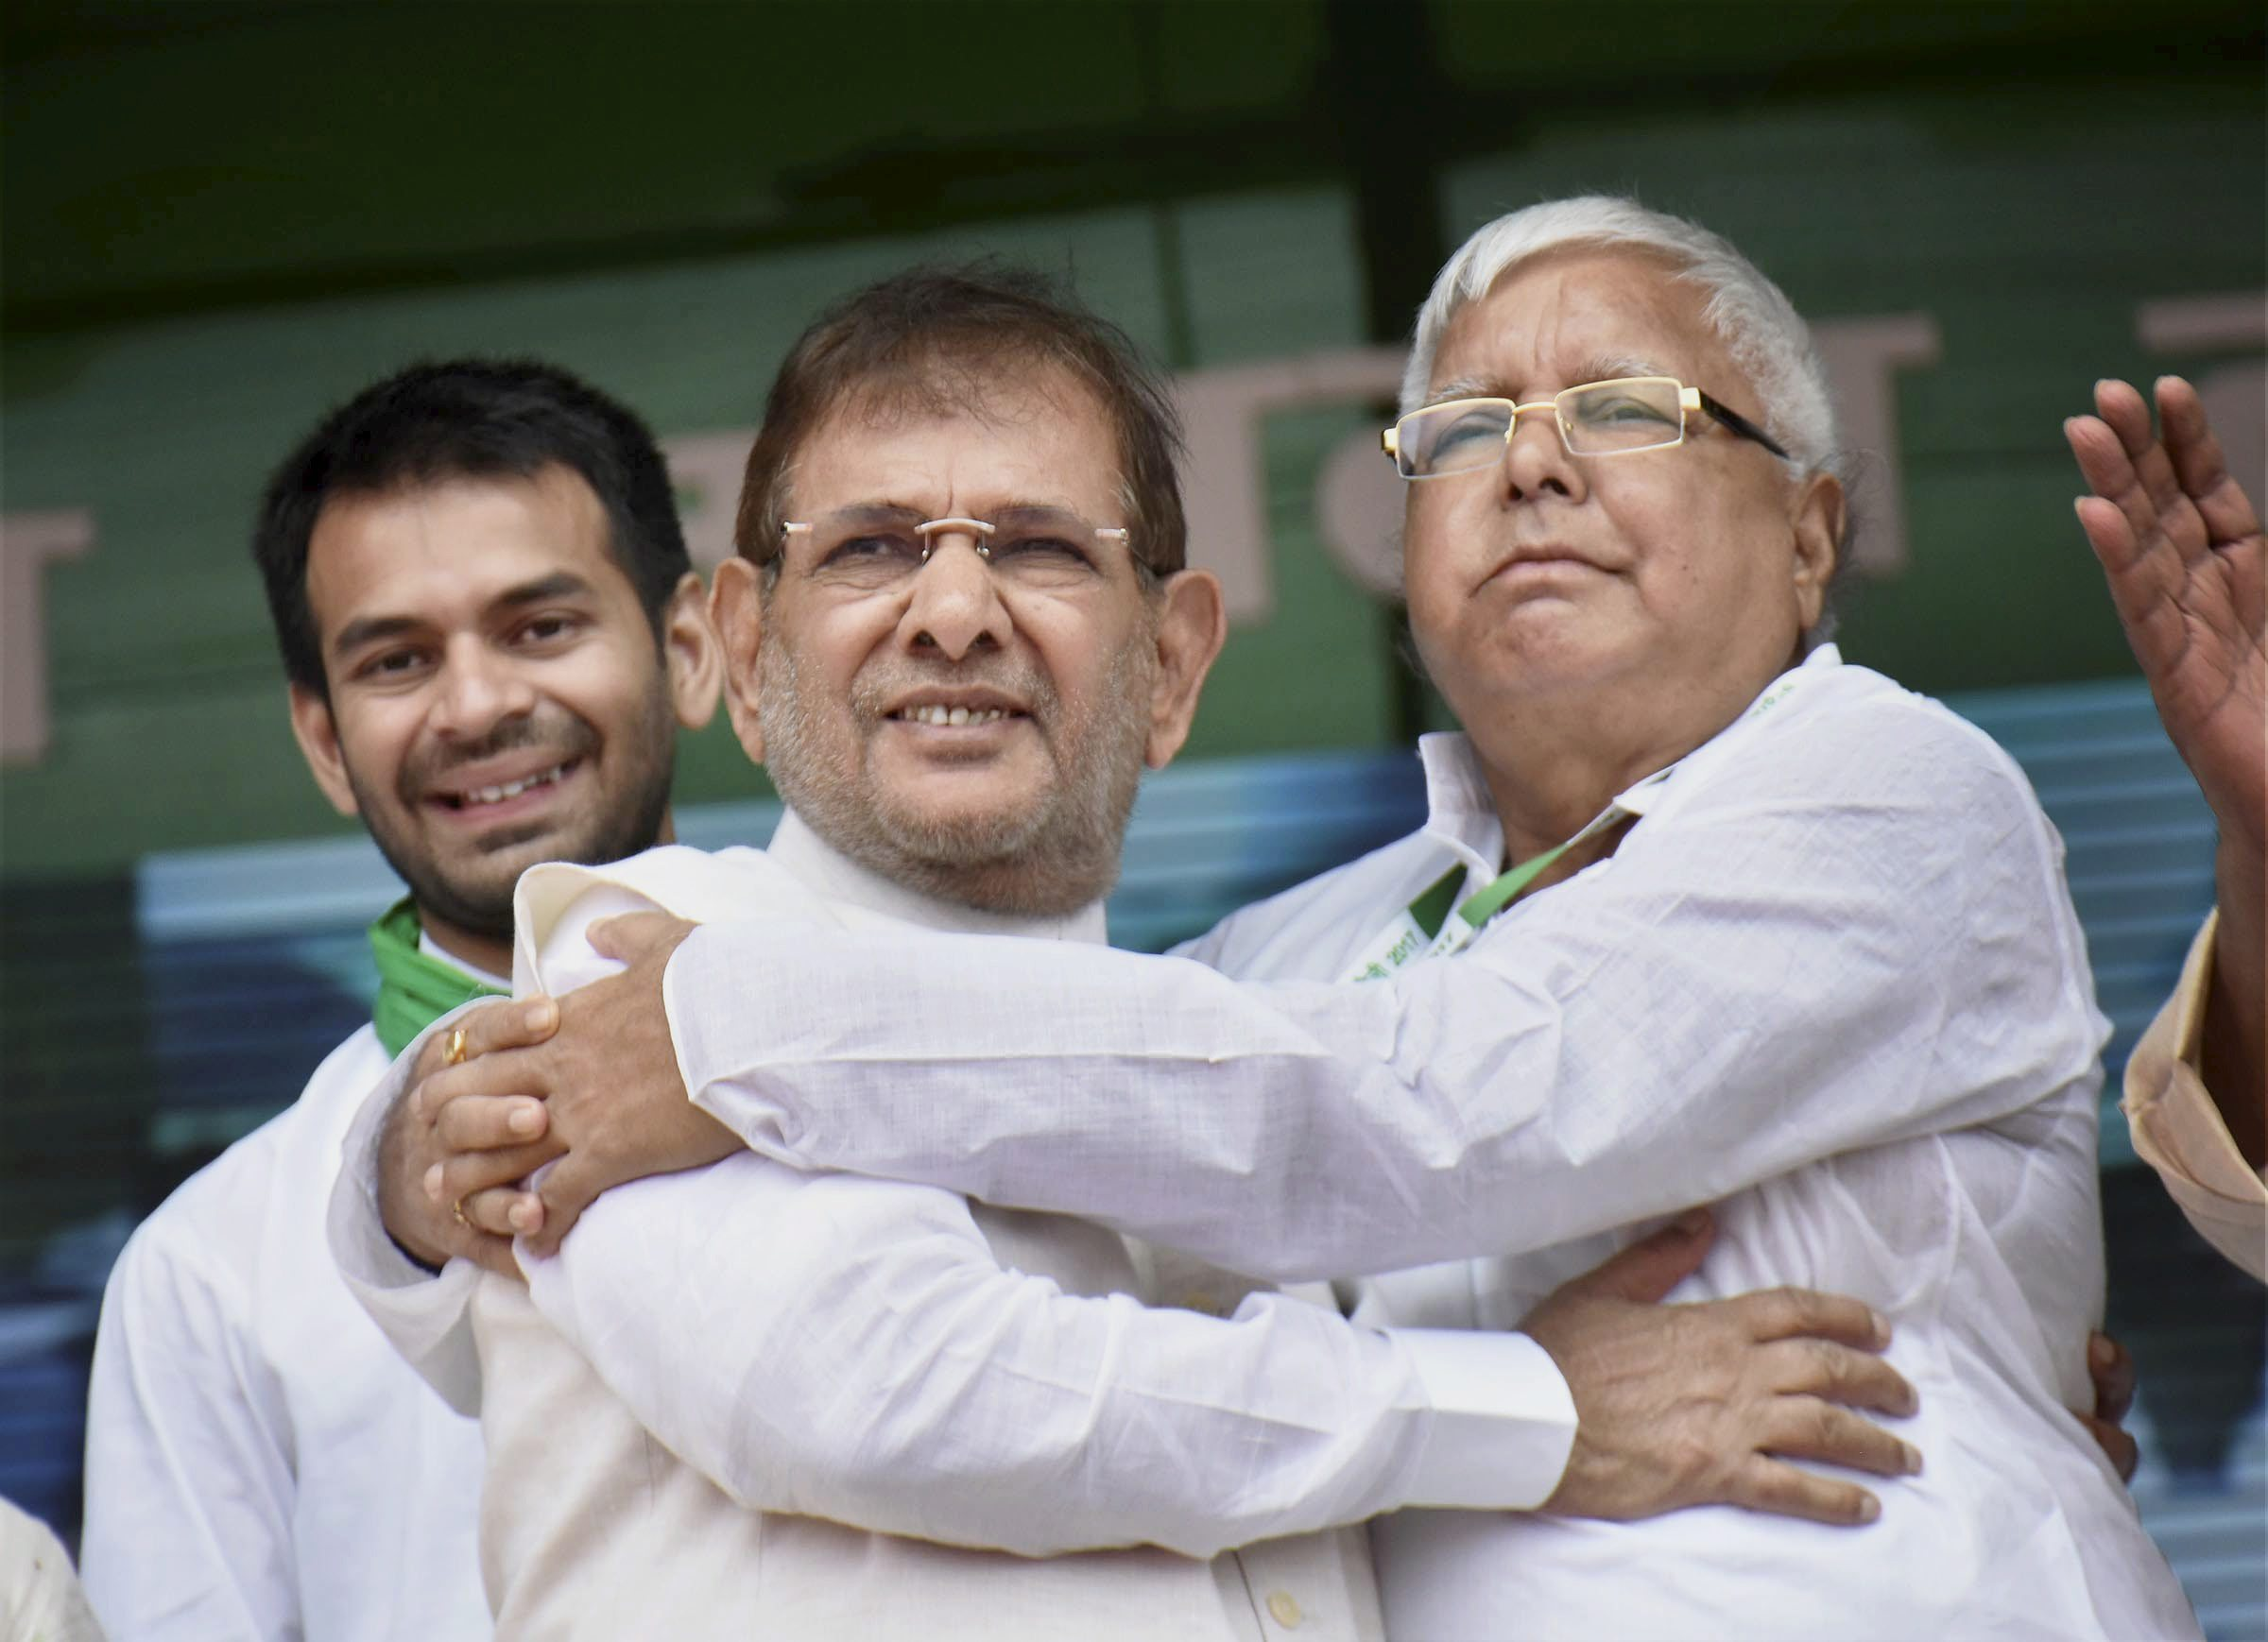 Patna: RJD chief Lalu Prasad Yadav with rebel Janata Dal-United (JD-U) leader Sharad Yadav during the 'BJP bhagao, desh bachao' rally at Gandhi Maidan in Patna on Sunday. Former Health Minister of Bihar Tej Partap Yadav also seen. PTI Photo(PTI8_27_2017_000082A)